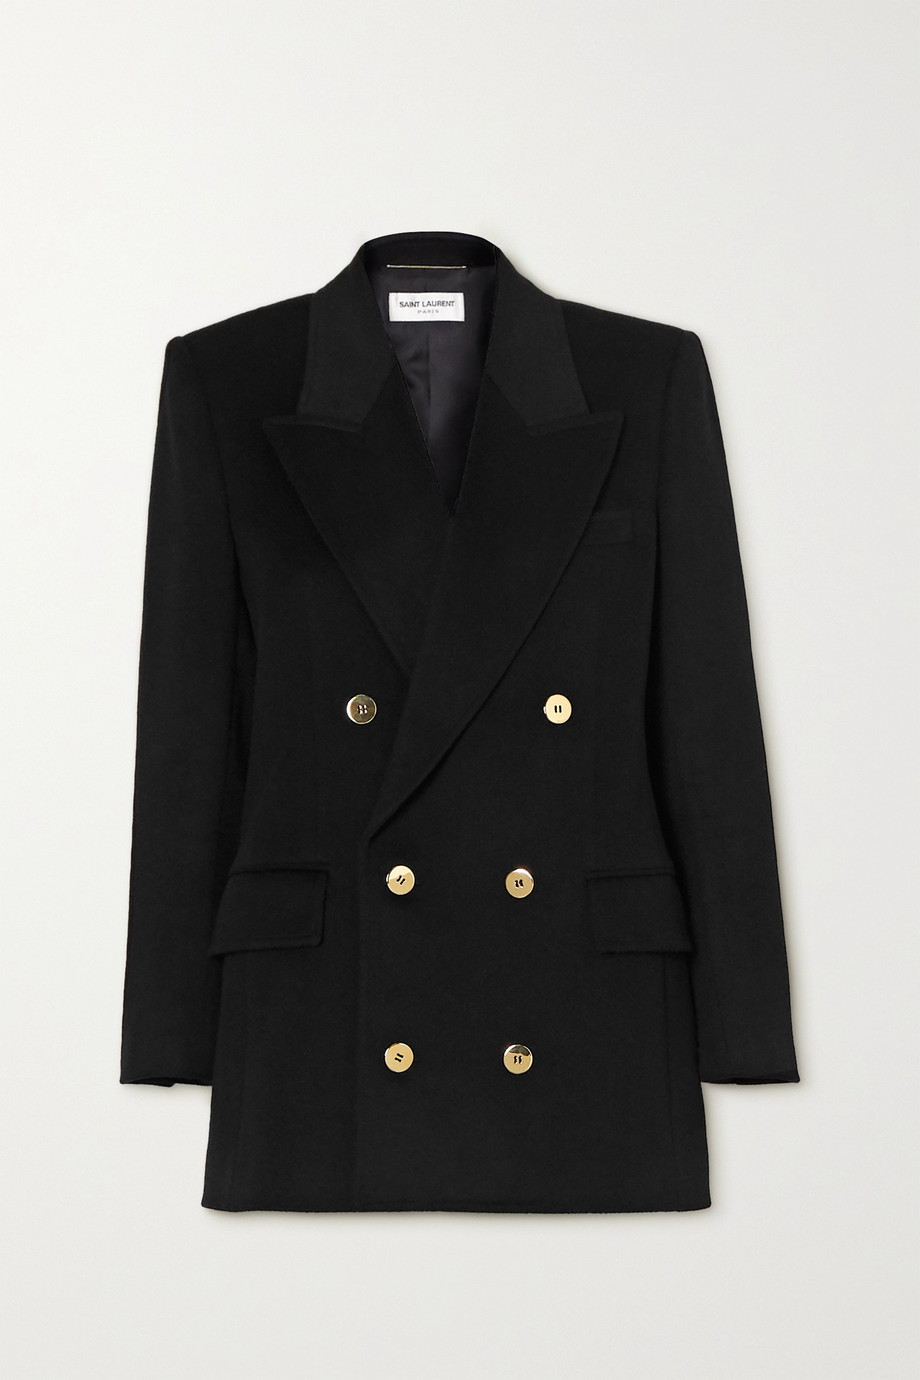 SAINT LAURENT Double-breasted wool and cashmere-blend blazer